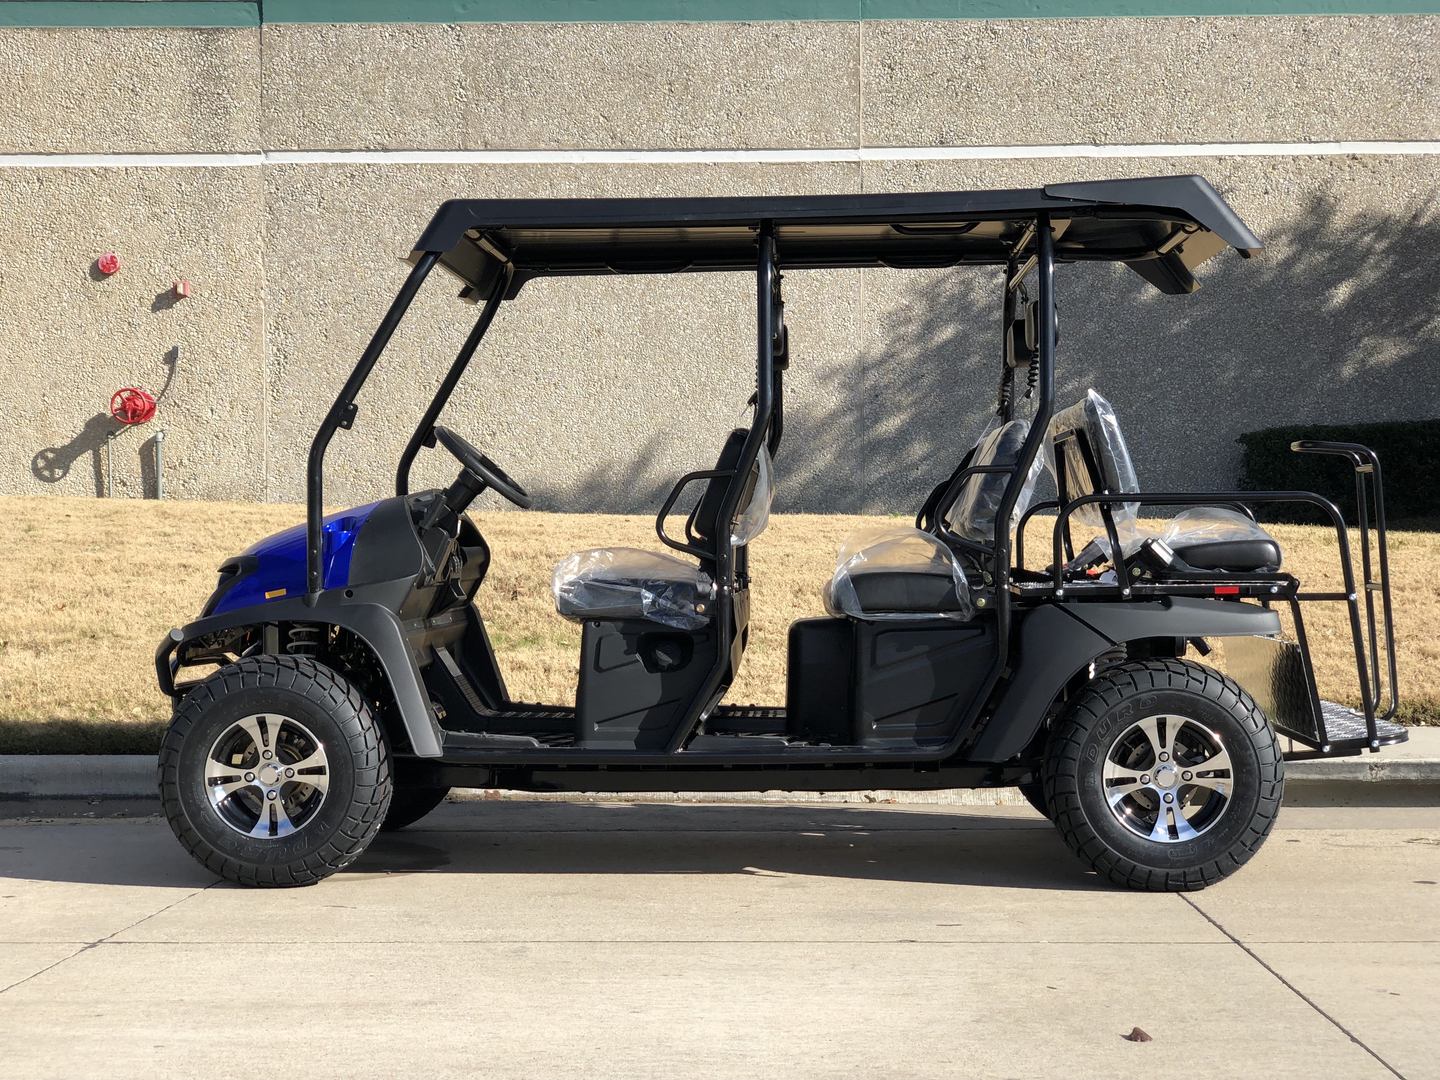 CAZADOR LIMO 400EFI 6 SEAT GOLF CART - FULLY ASSEMBLED/ FREE SHIPPING